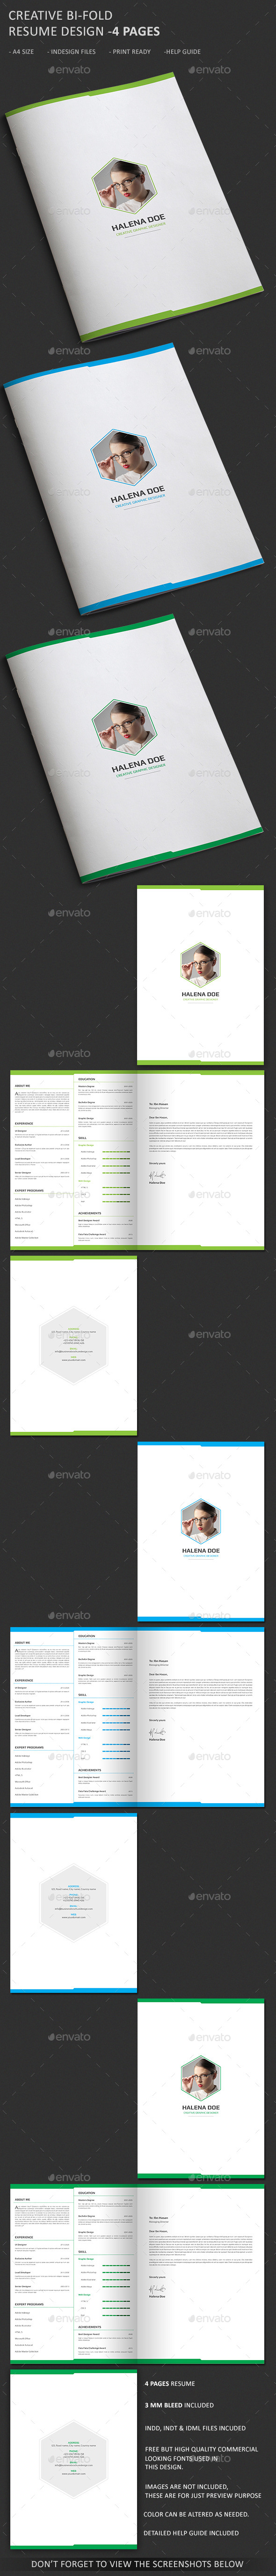 GraphicRiver Clean and Creative Resume Template- 4 Pages 10478776